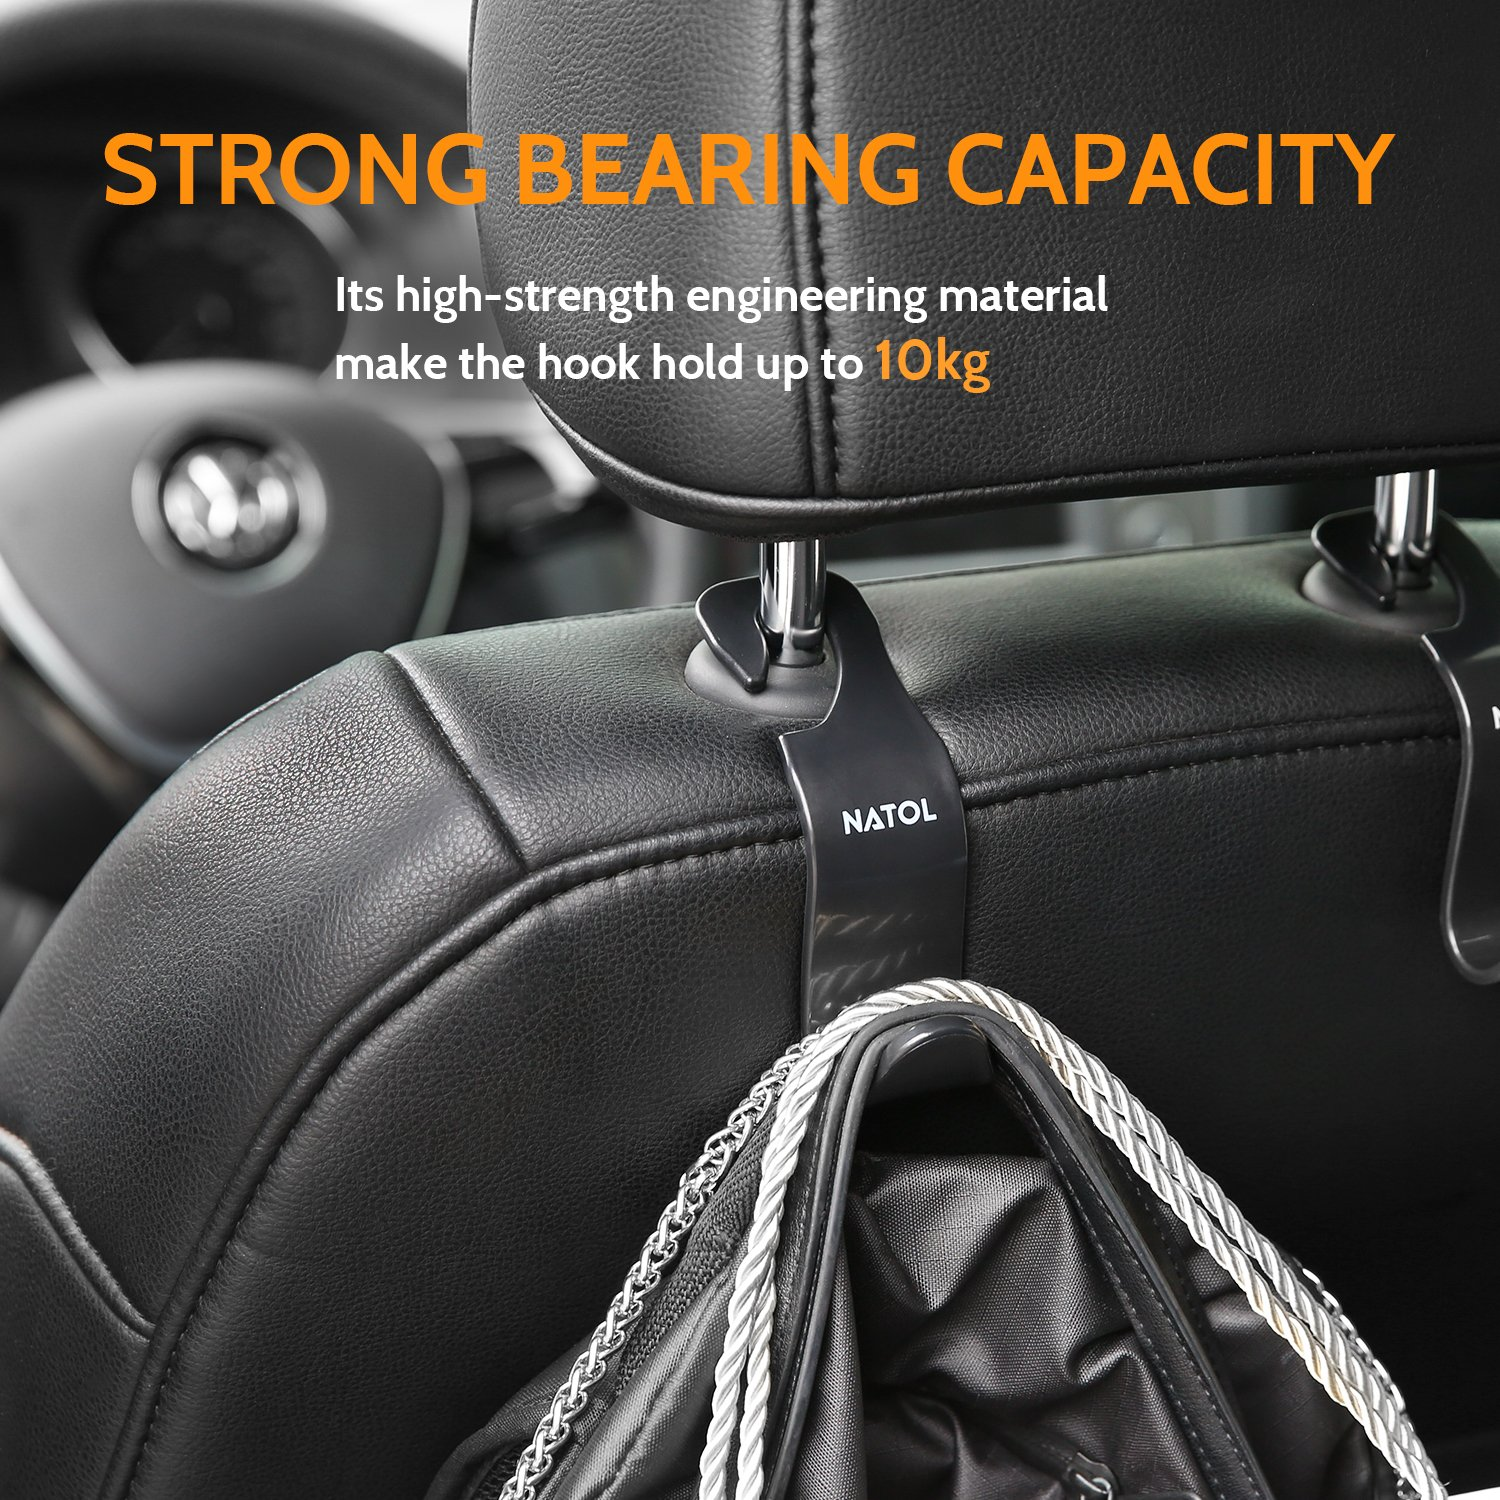 Car Headrest Hooks, NATOL Car Seat Storage Organiser Hanger for Purse Handbag Coat and Grocery Bag, 4 Packs